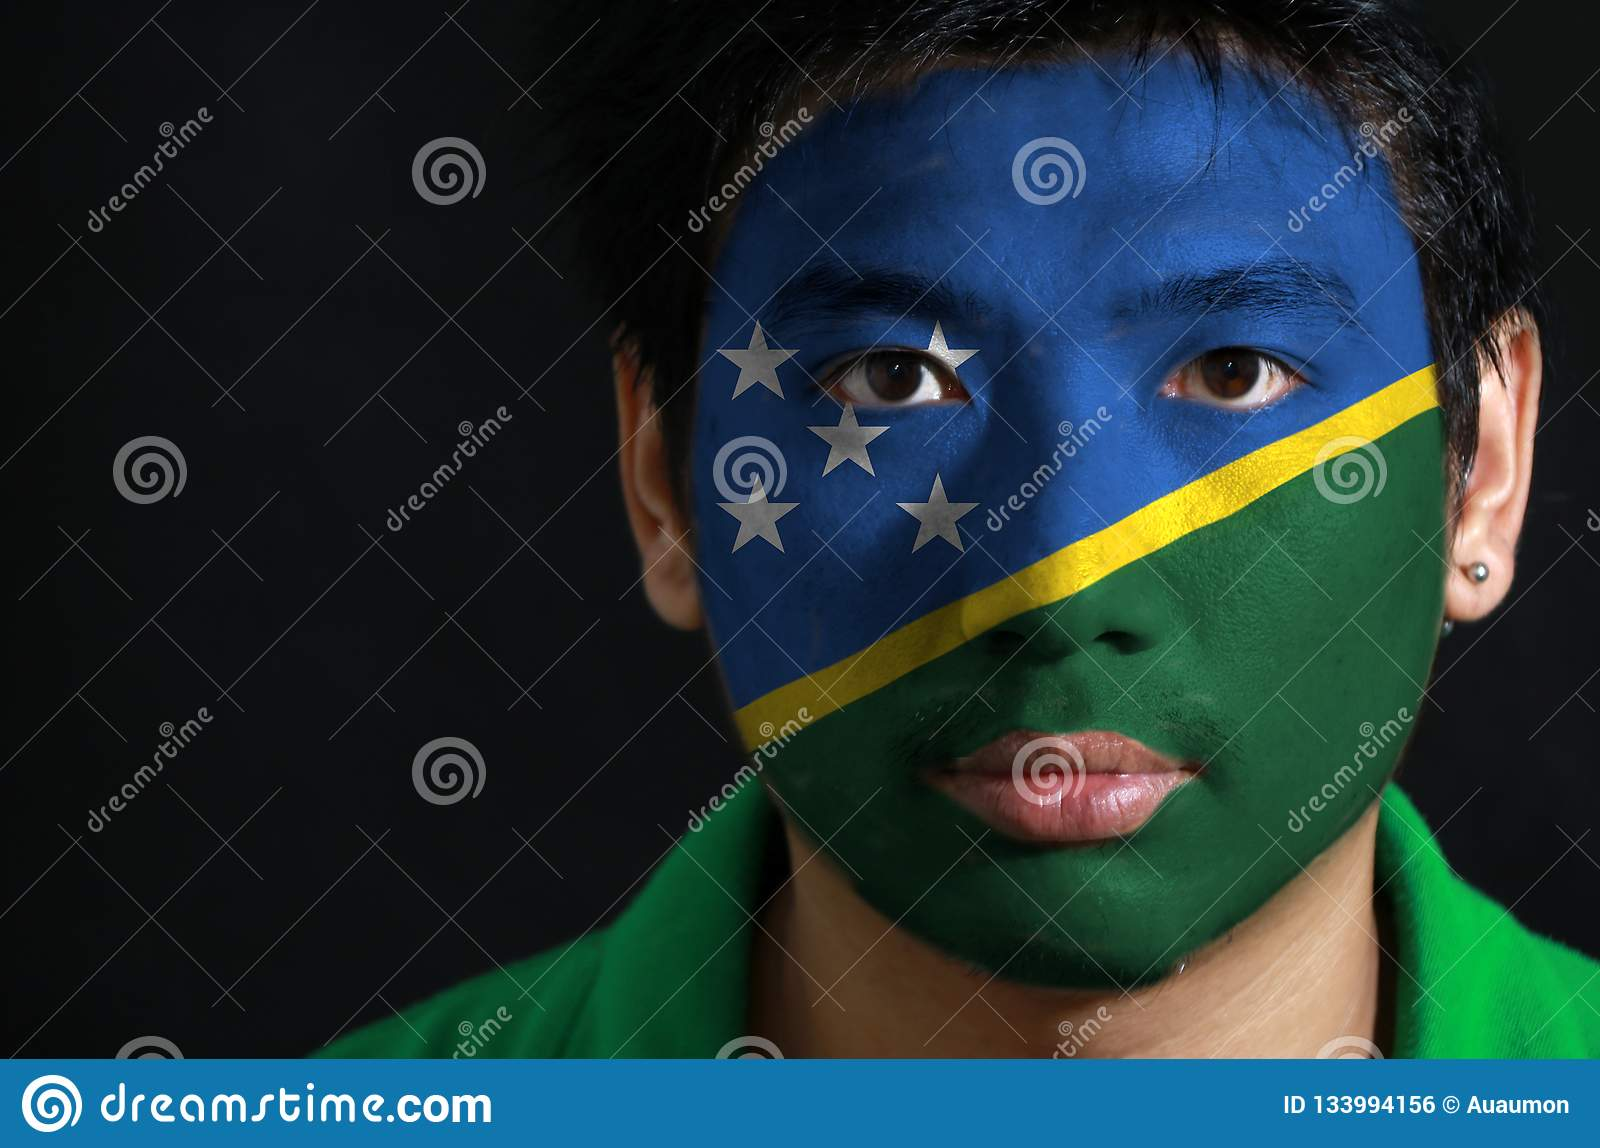 Portrait of a man with the flag of the Solomon Islands painted on his face on black background.